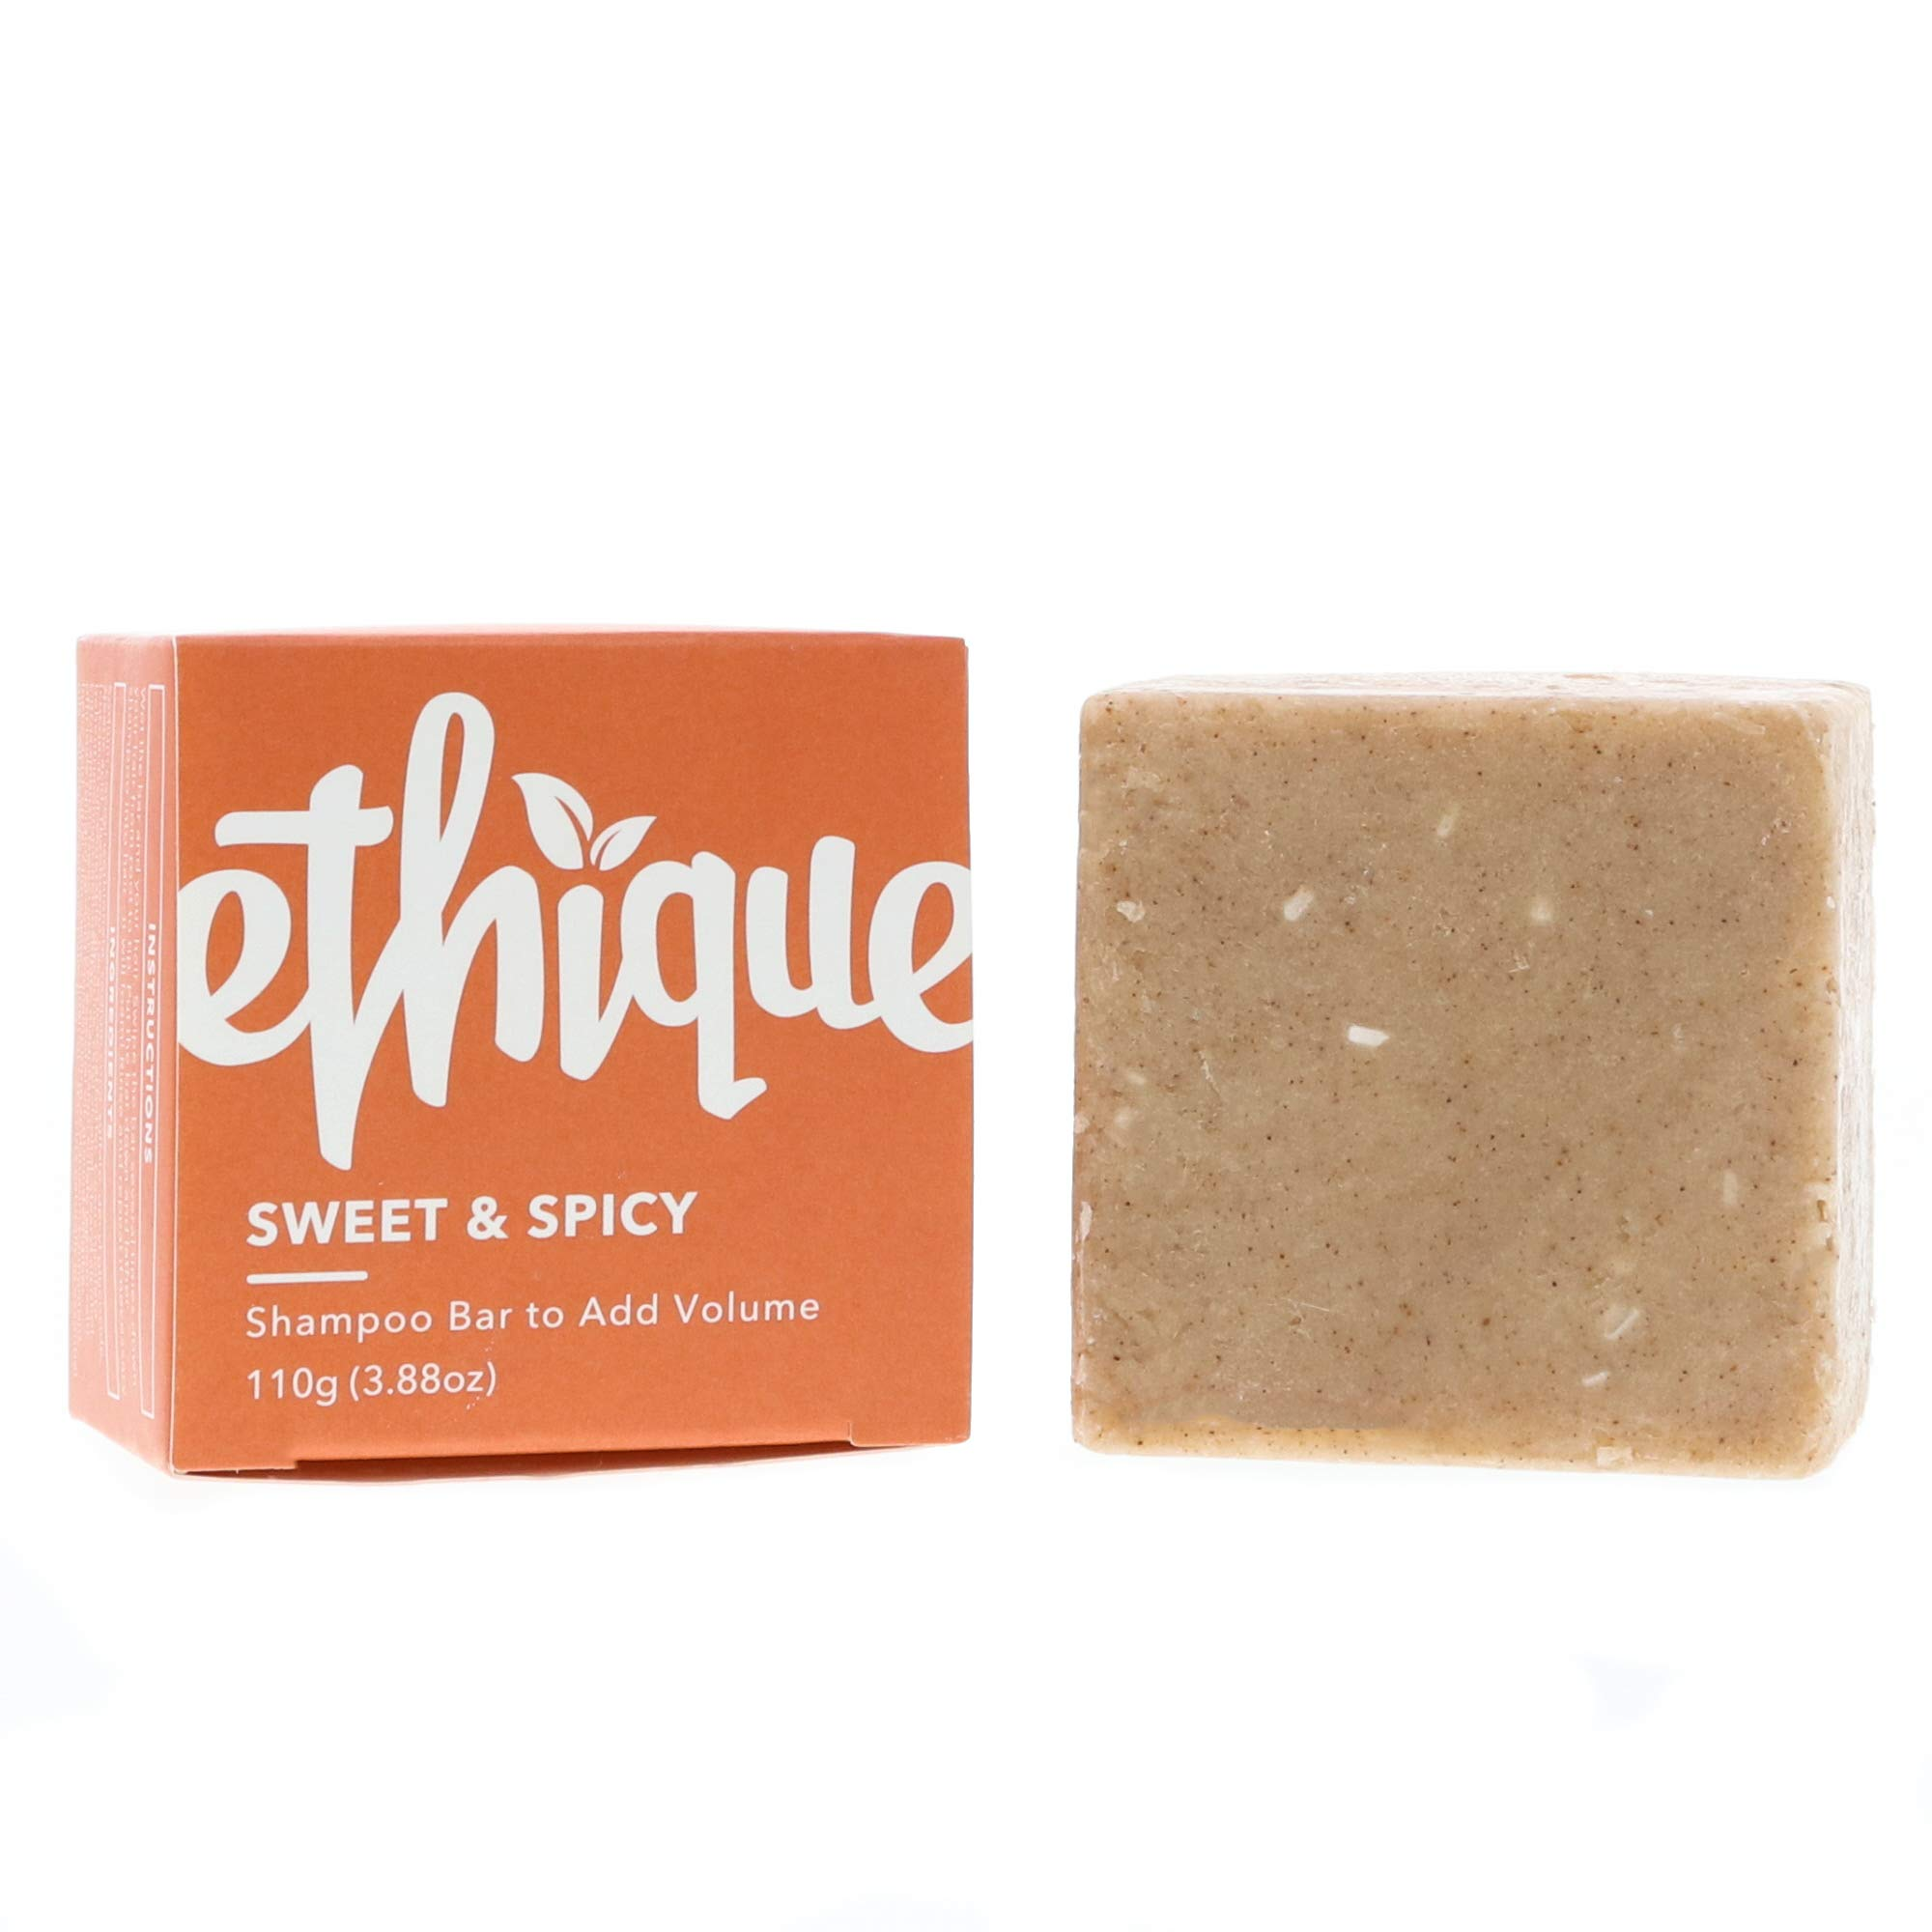 Ethique Eco-Friendly Solid Shampoo Bar to Add Volume & Bounce, Sweet & Spicy - Sustainable Natural Shampoo, Plastic Free, 100% Soap Free, Vegan, Plant Based, 100% Compostable and Zero Waste 3.88oz